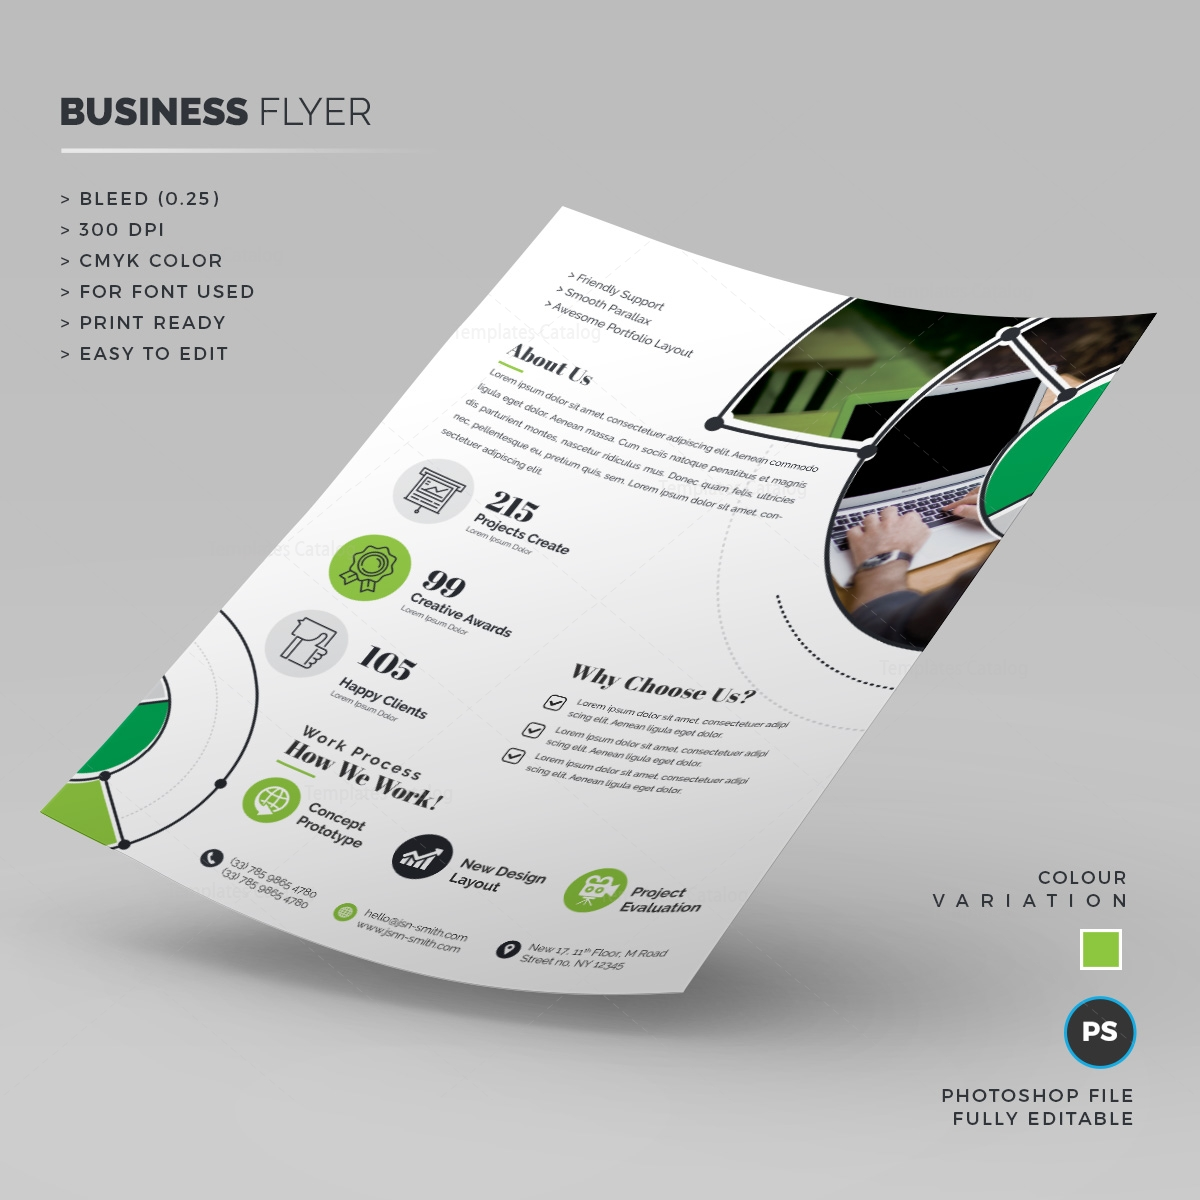 print ready business flyer template 000256